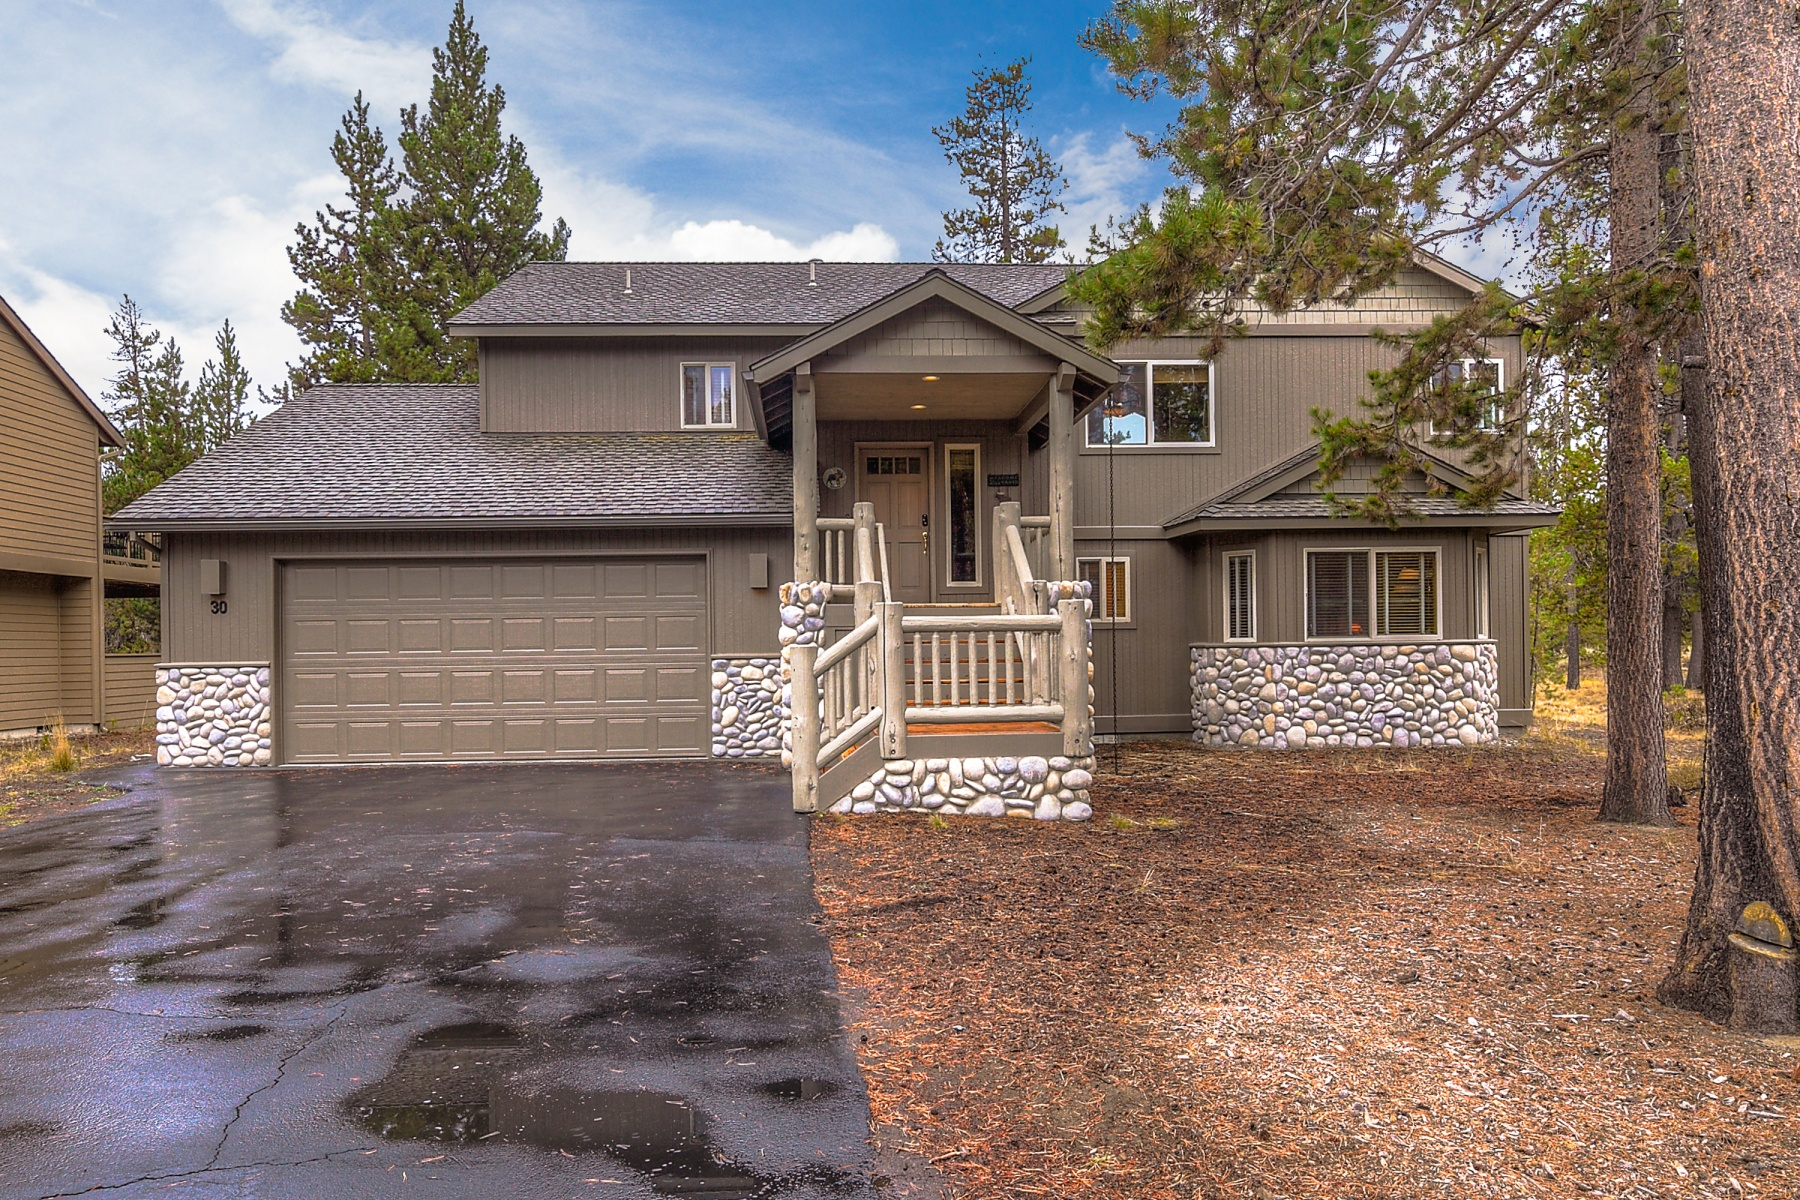 Single Family Home for Sale at Fully-Furnished Sunriver Home 30 Tokatee Ln Sunriver, Oregon, 97707 United States